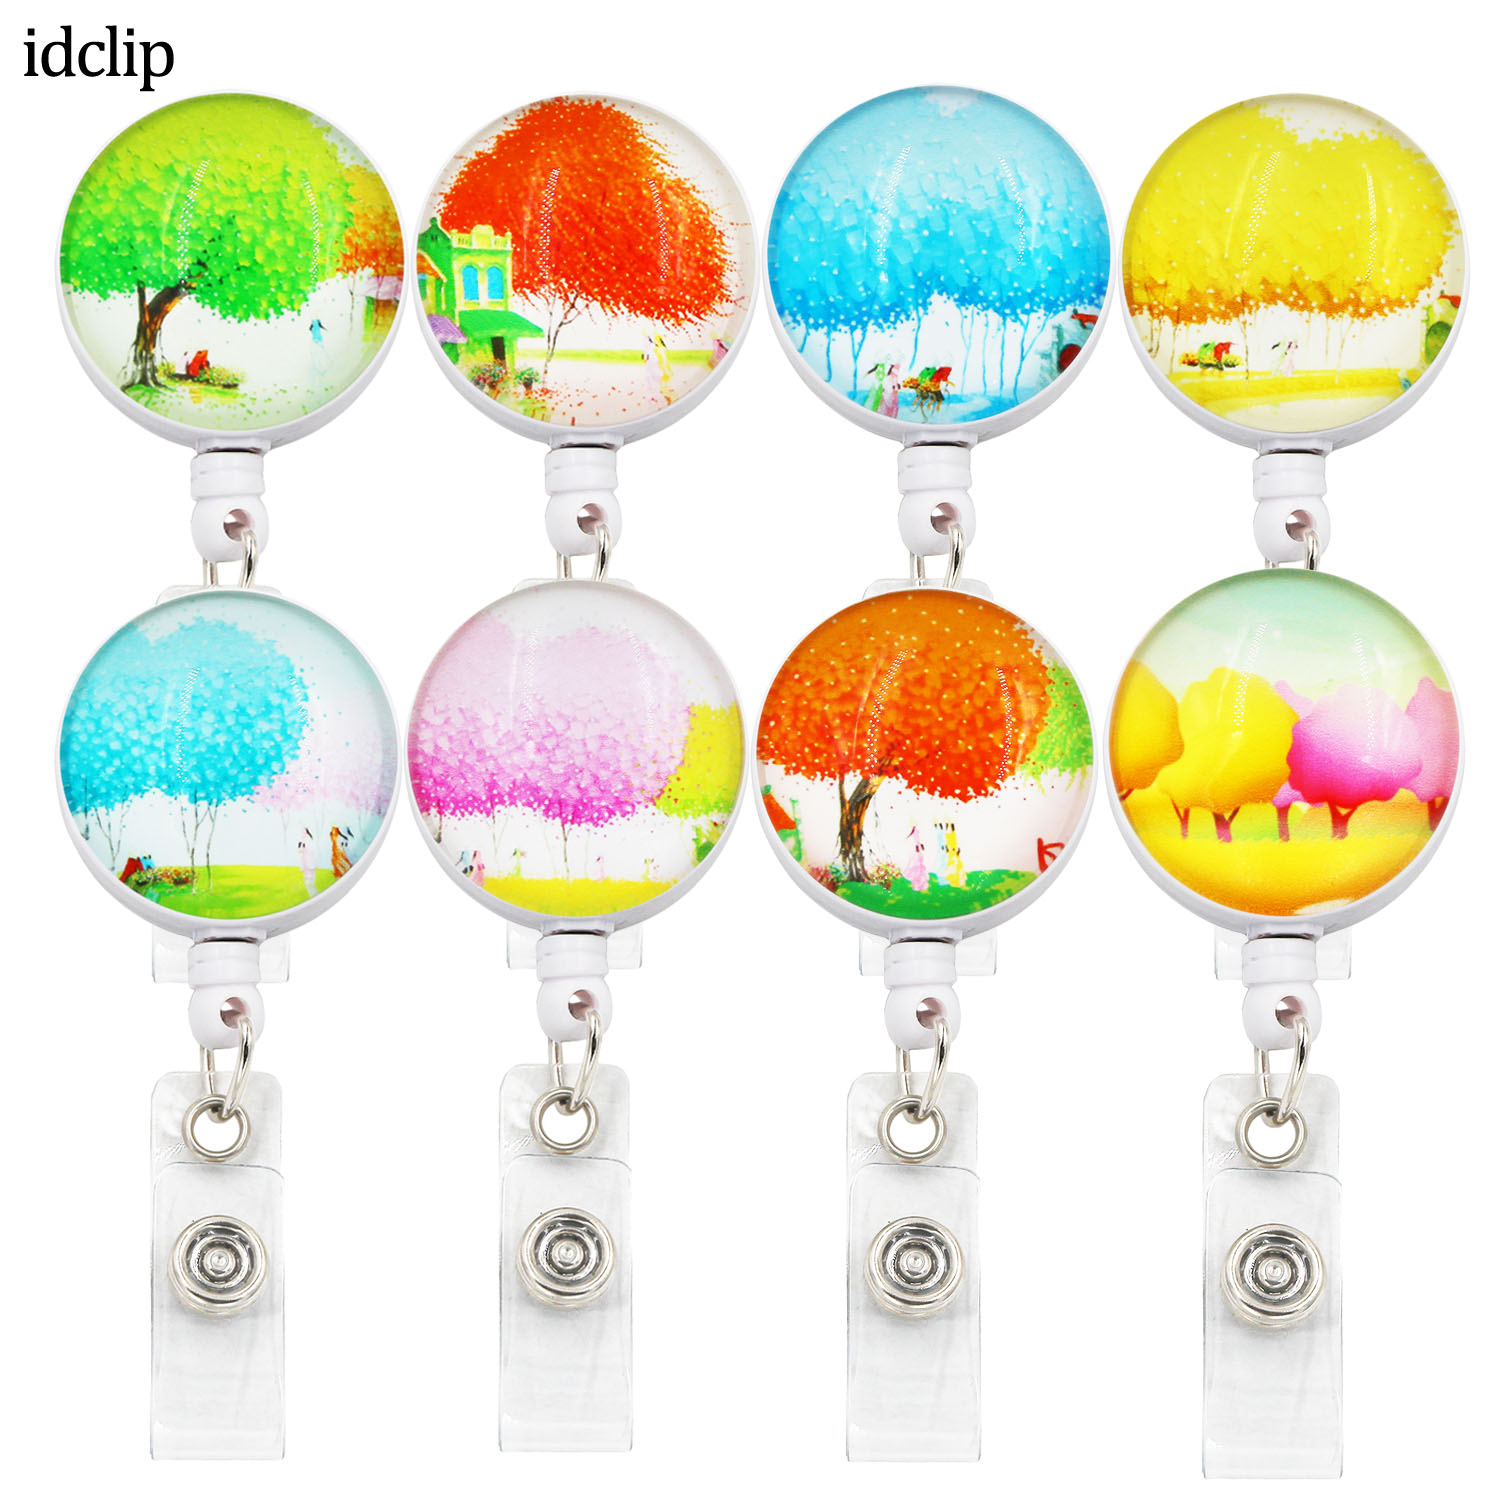 Idclip 3D ID Retractable Badge Holder With Alligator Clip Retractable Cord ID Badge Reel 24 Inch